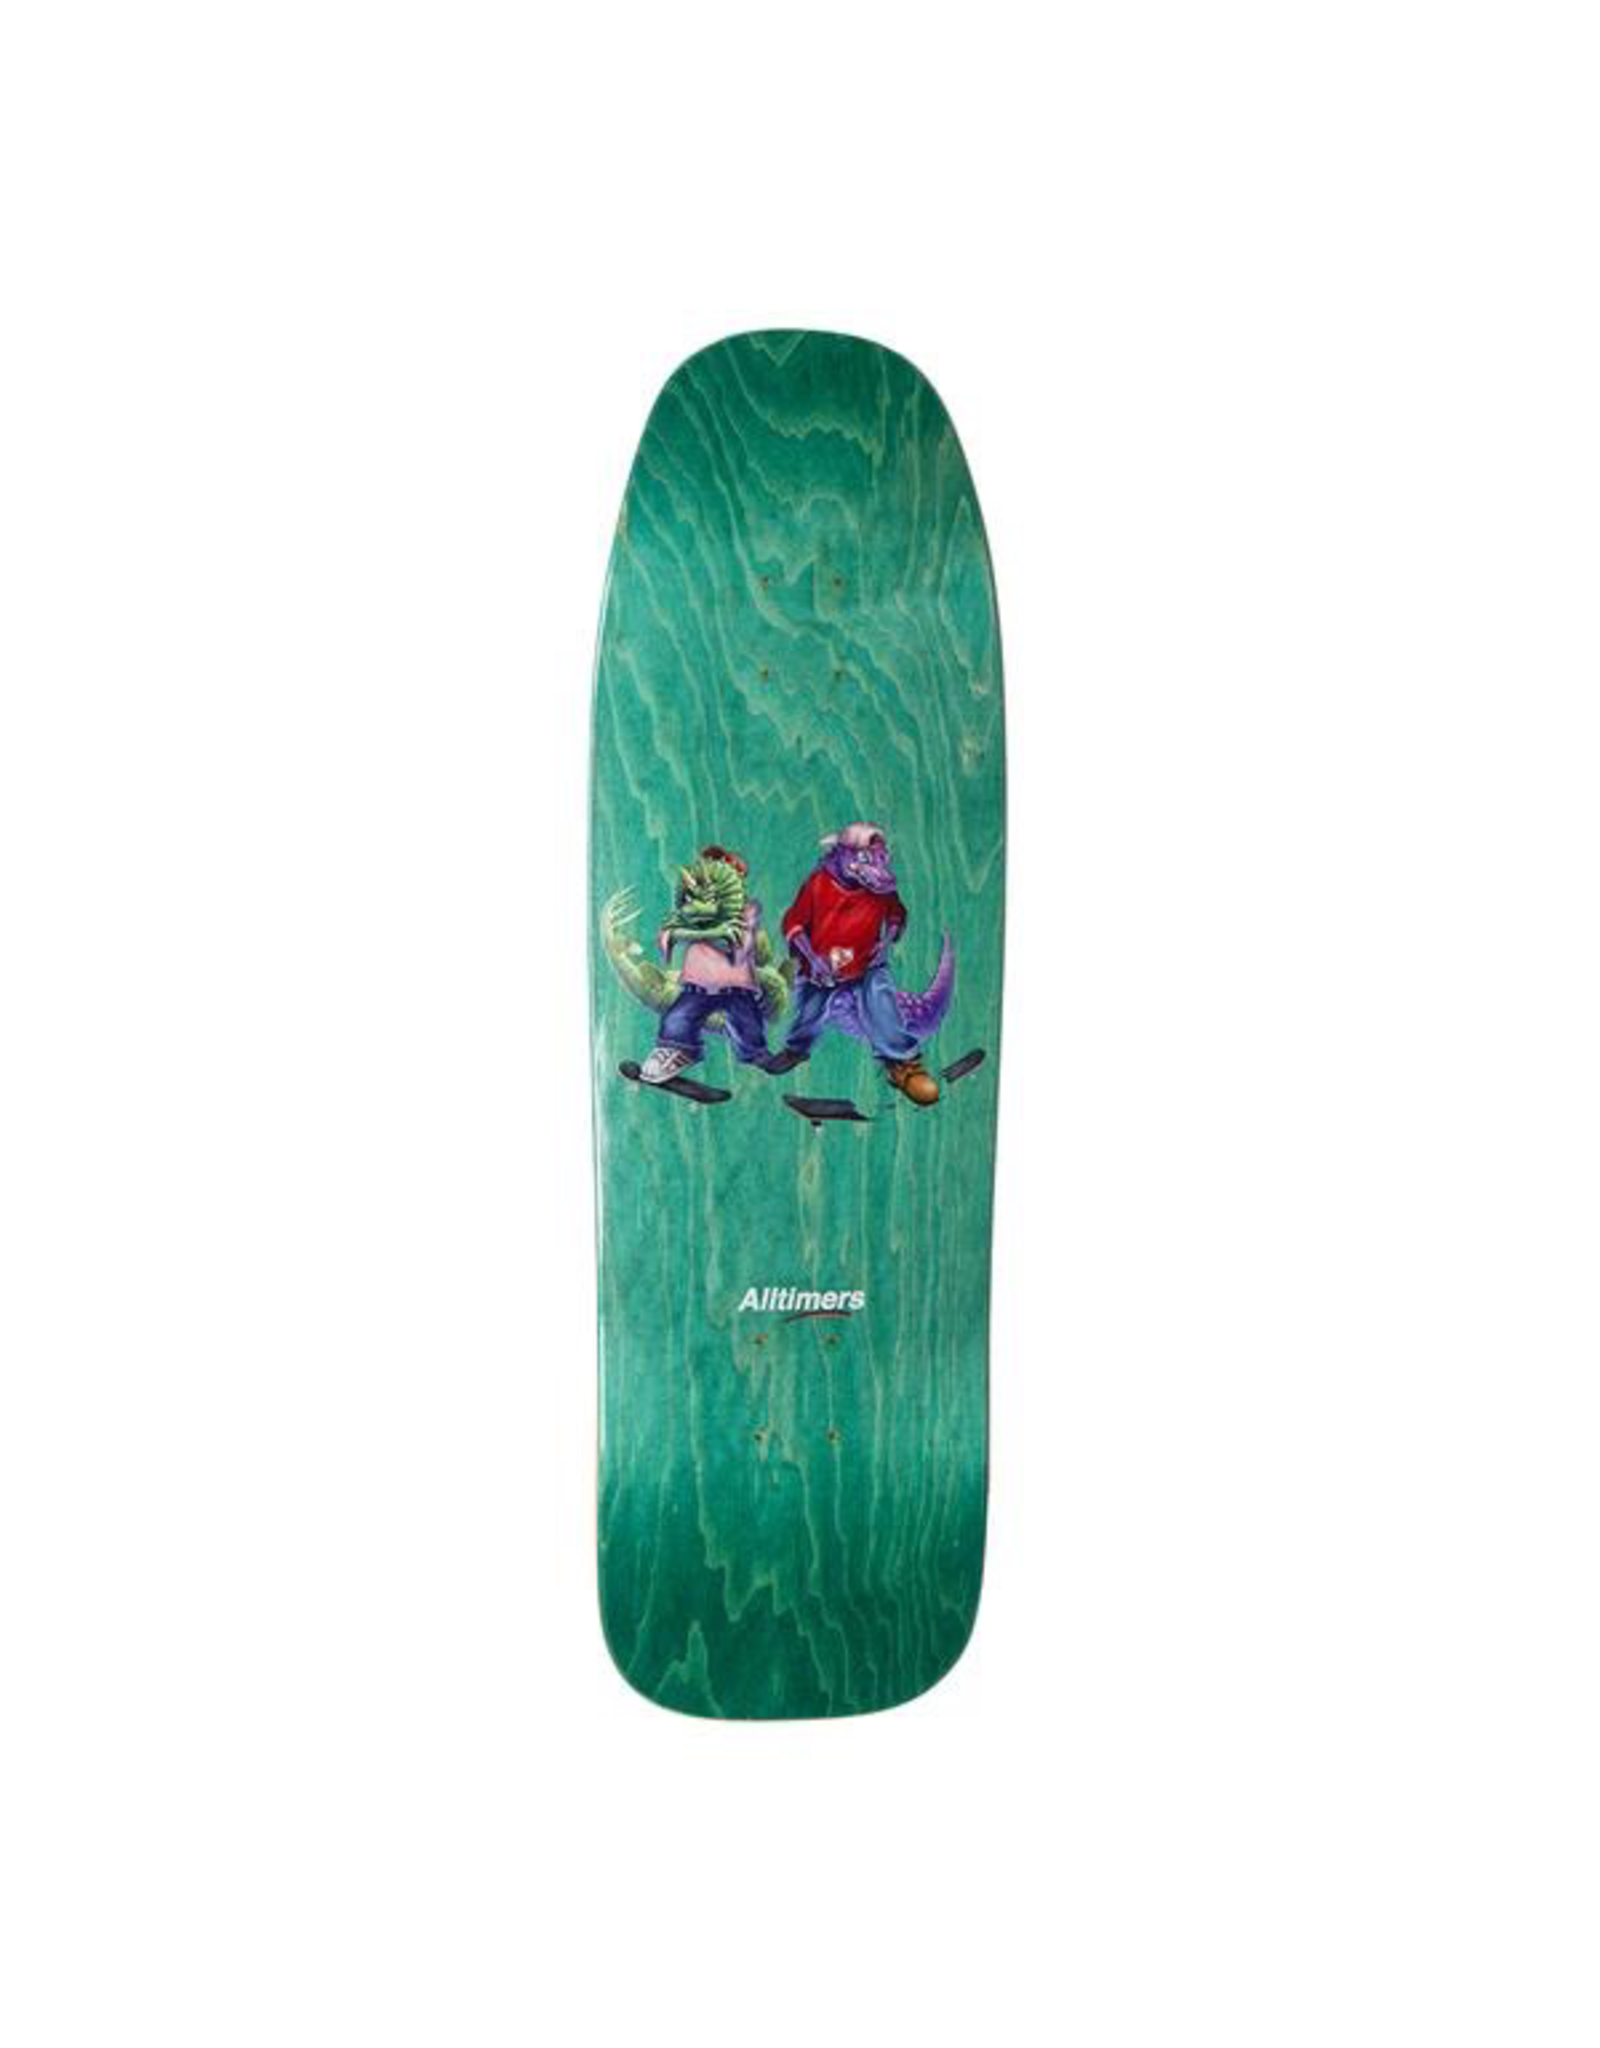 Alltimers Fossil Gang Cruiser Teal 9.25""